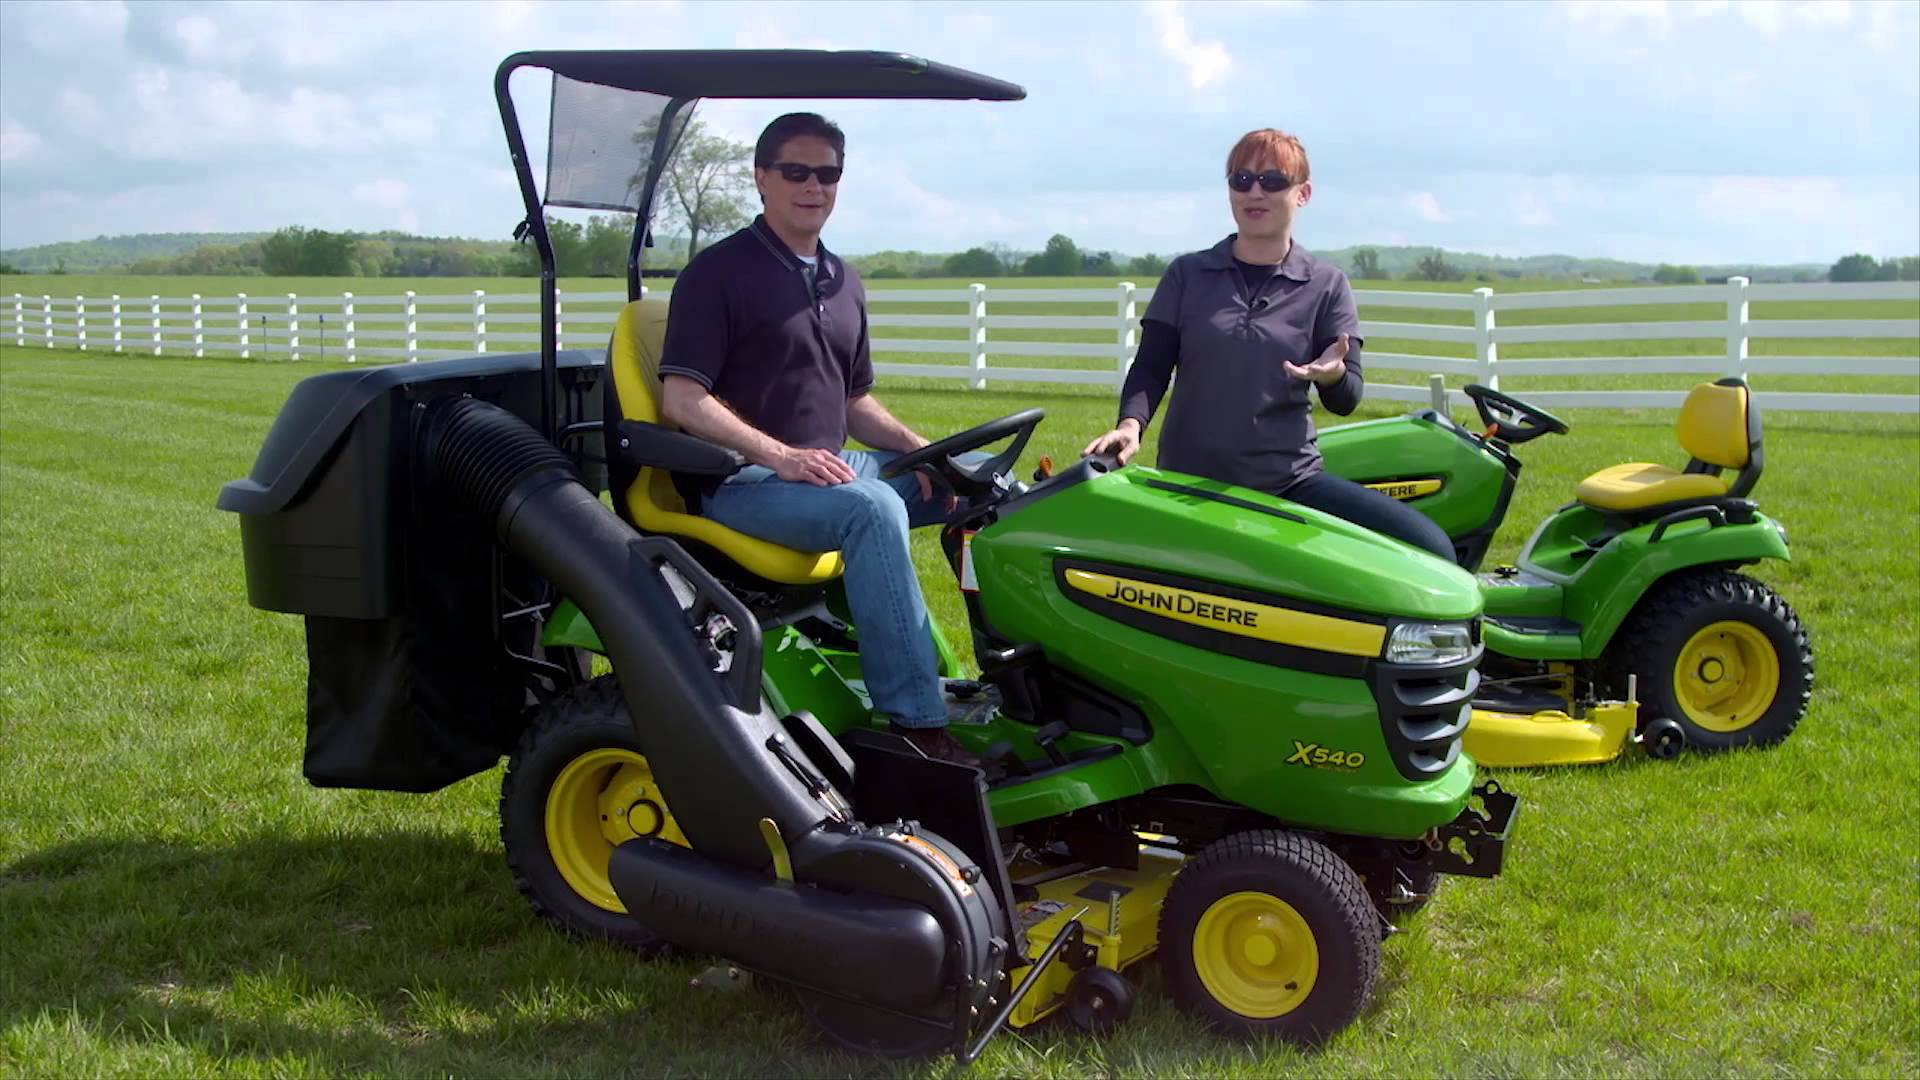 John Deere Riding Lawn Tractor - Attachments - YouTube